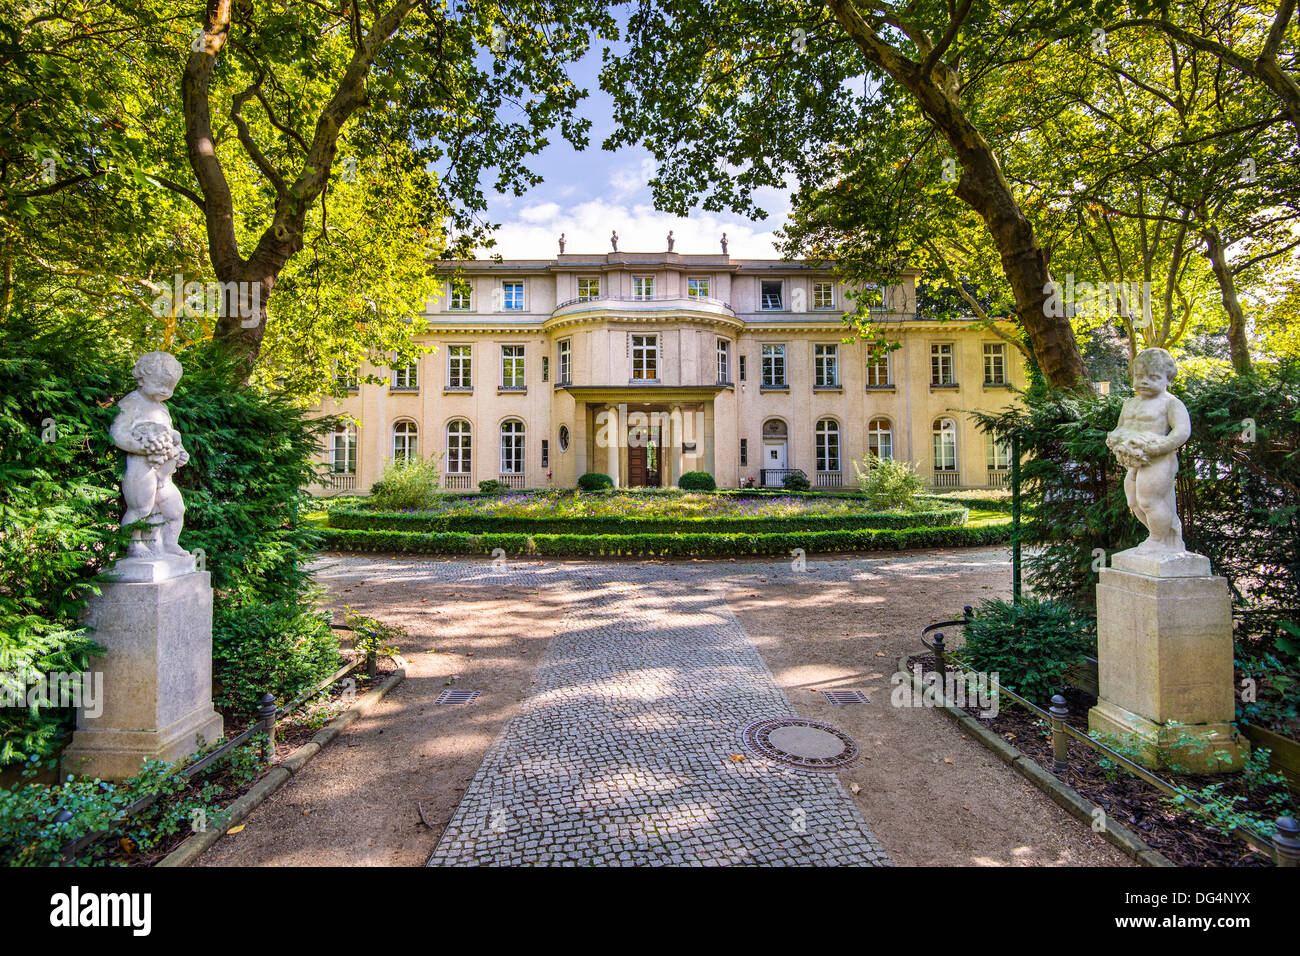 Maison de Wannsee à Berlin, Allemagne. Photo Stock